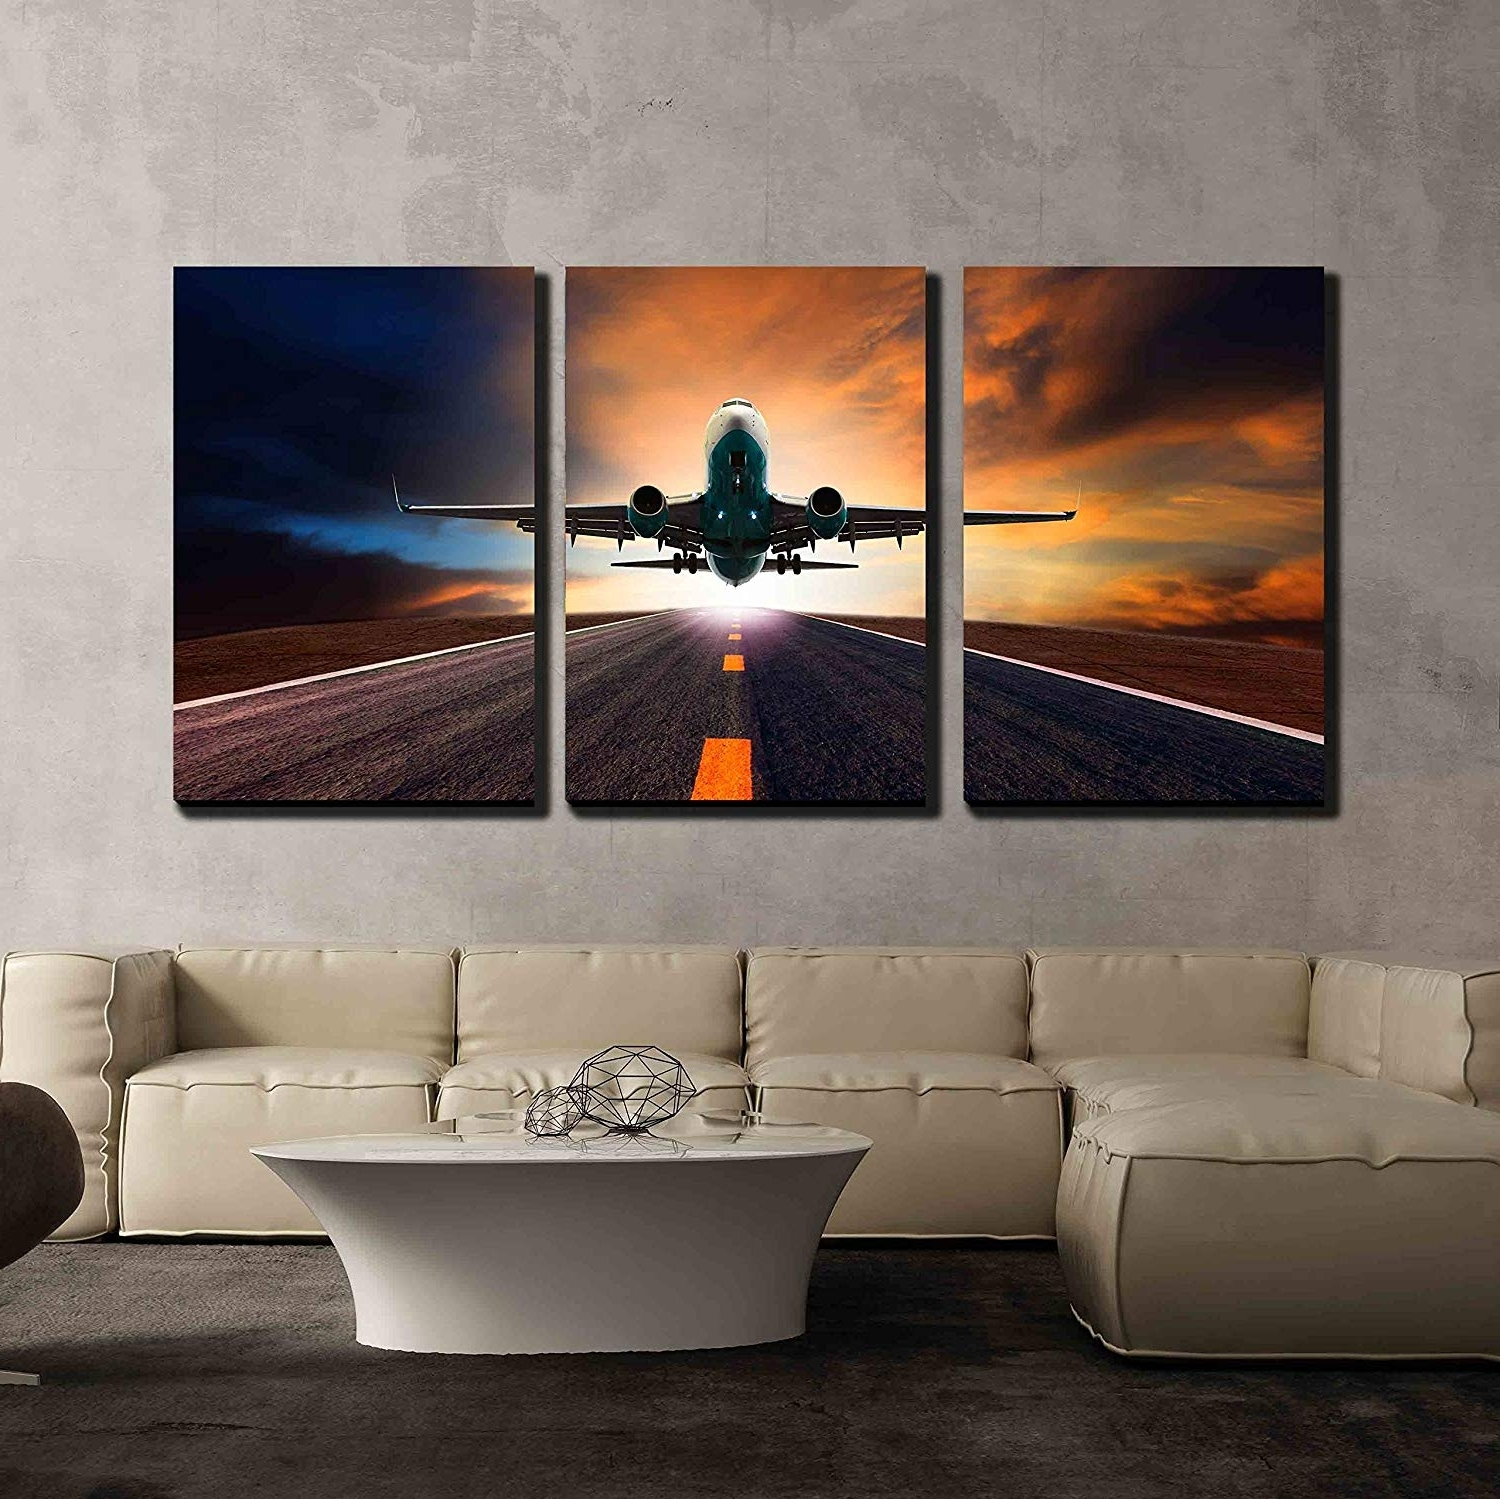 Famous Passenger Jet Plane Flying Over Airport Runway Against Beautiful With Regard To Airplane Wall Art (View 13 of 20)